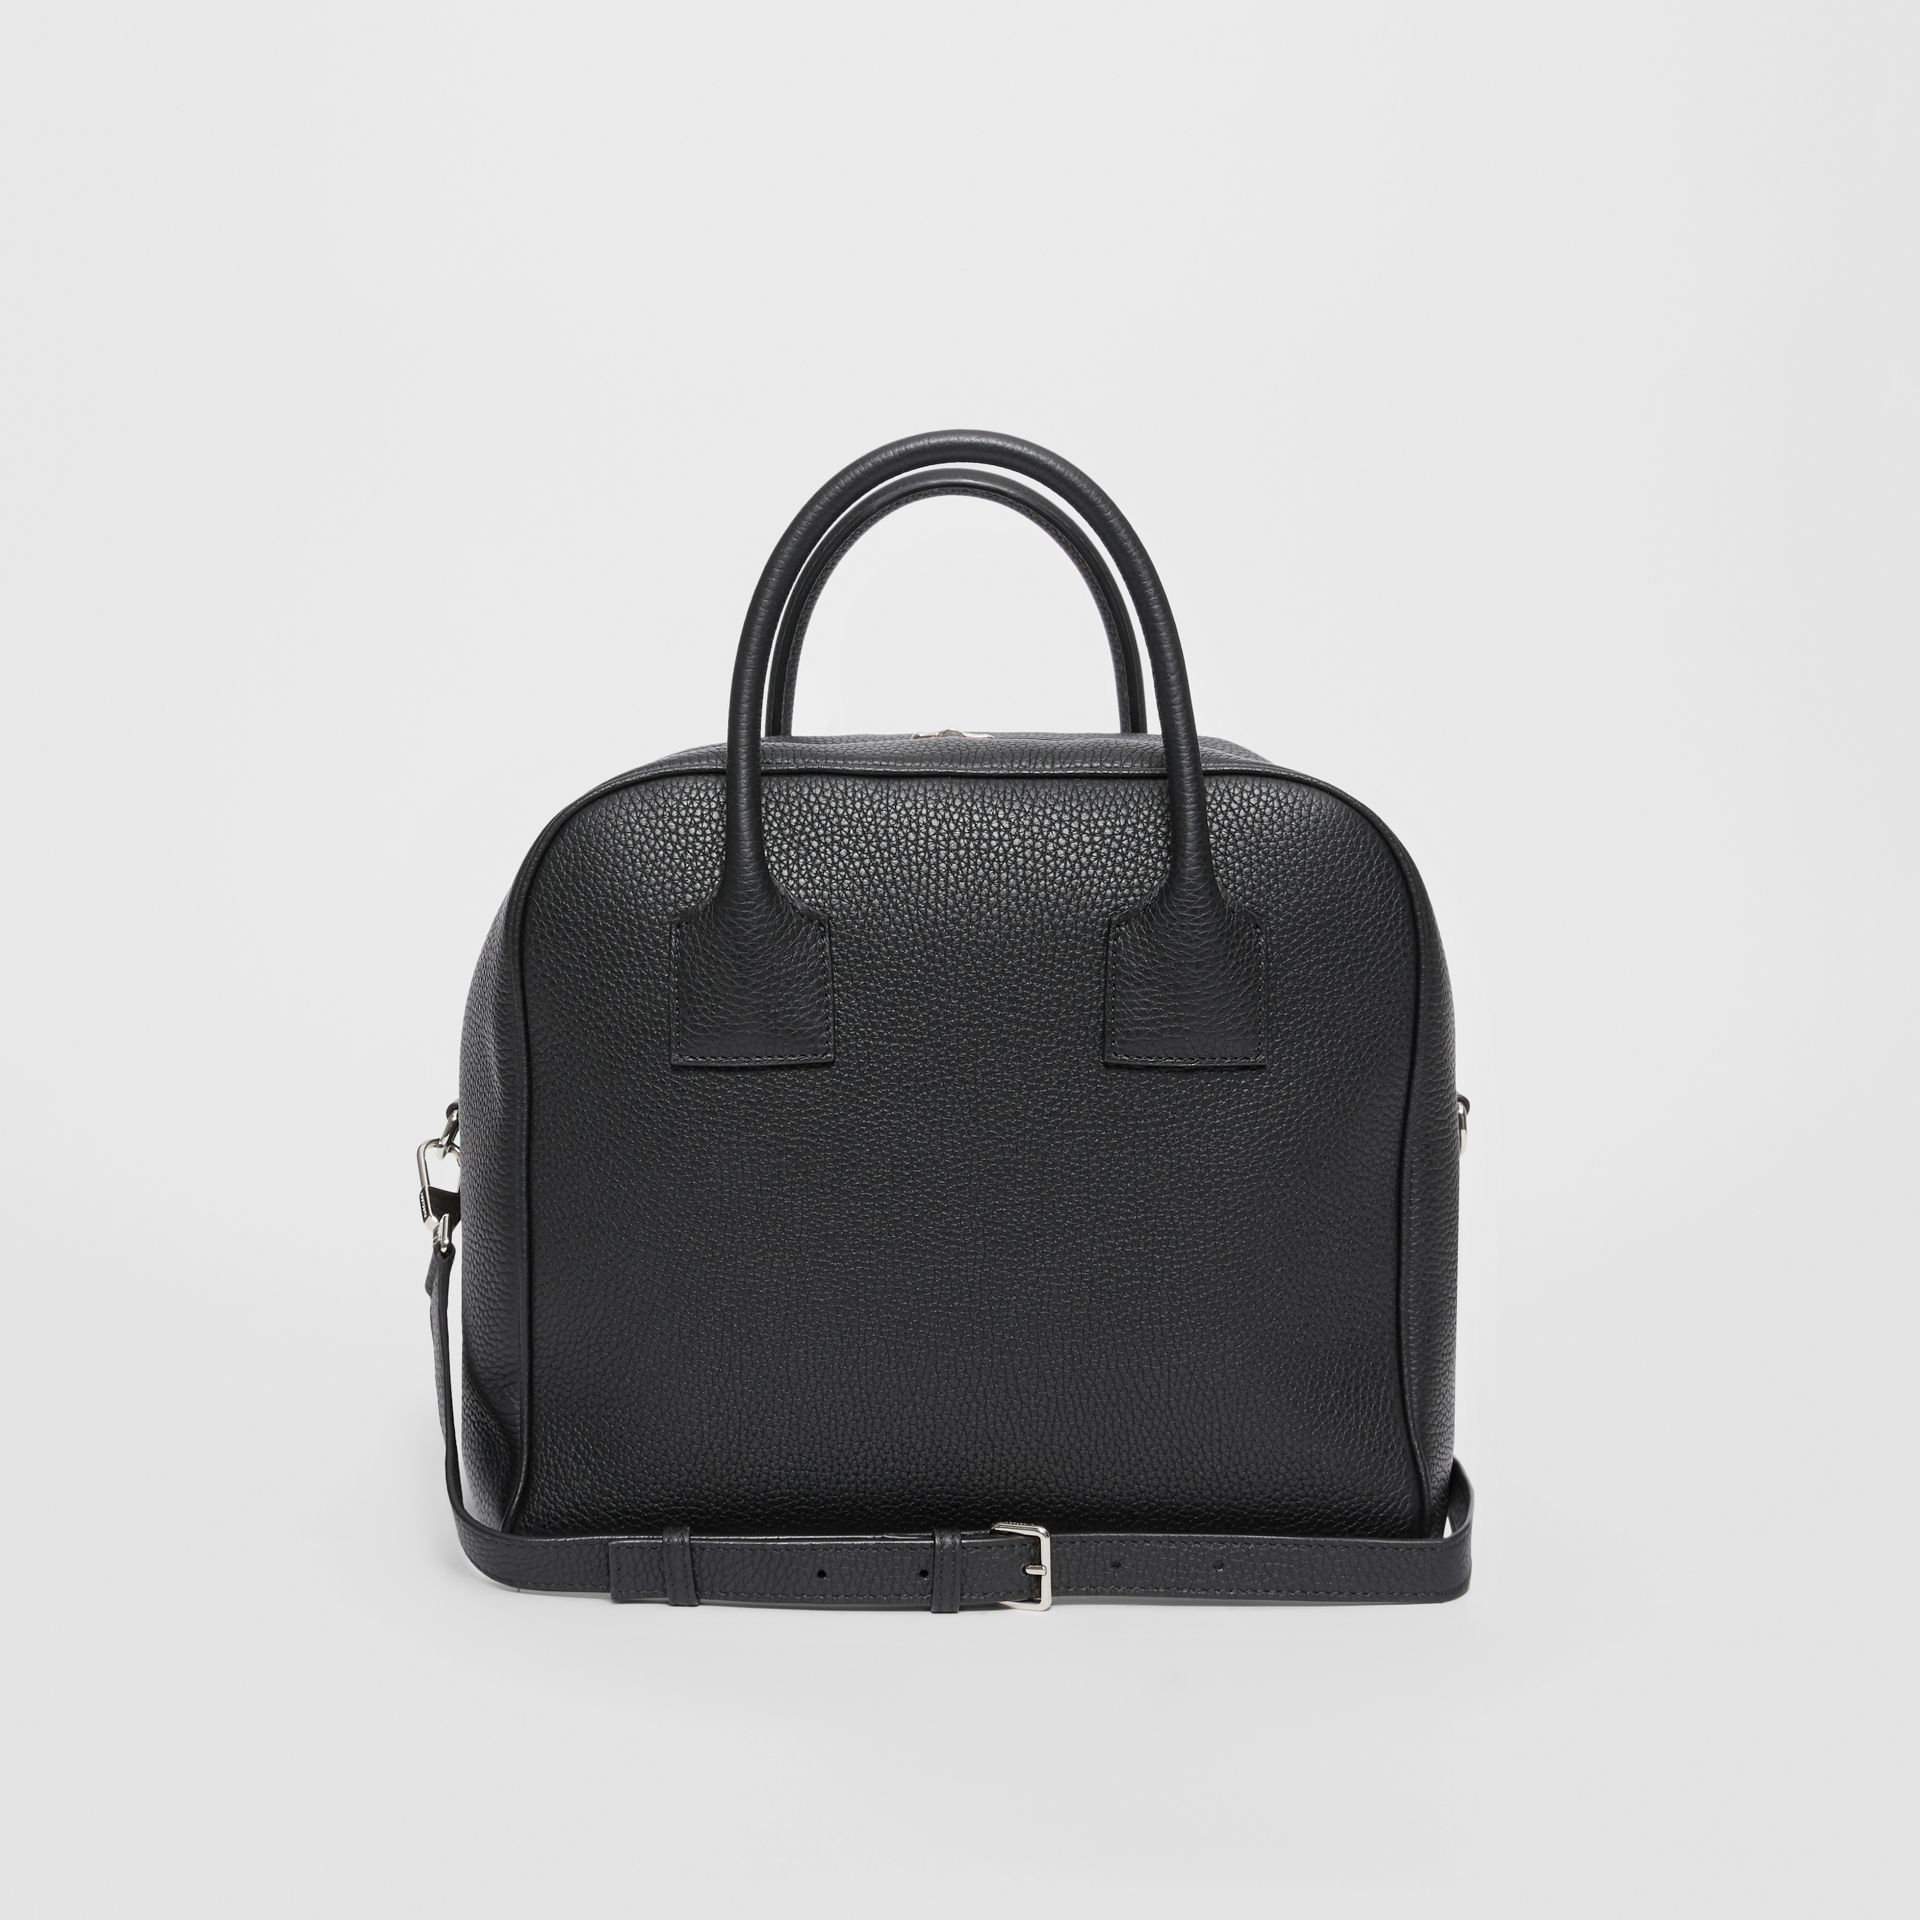 Medium Leather Cube Bag in Black - Women | Burberry United Kingdom - gallery image 7